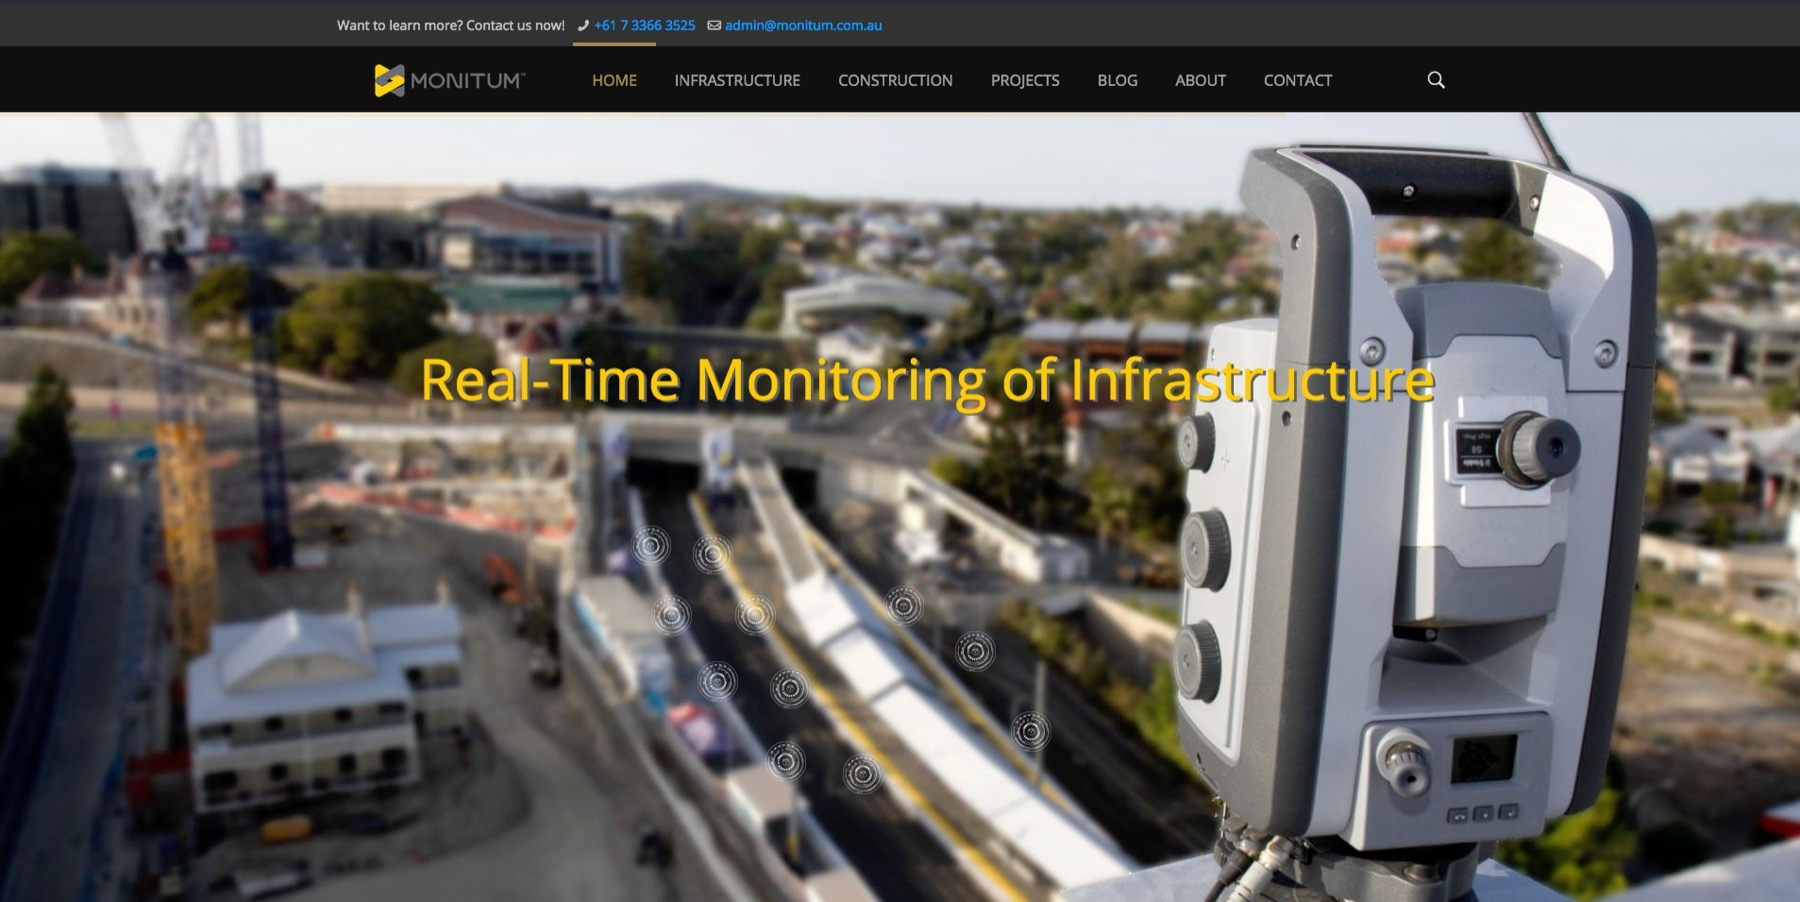 monitum website 1 copy